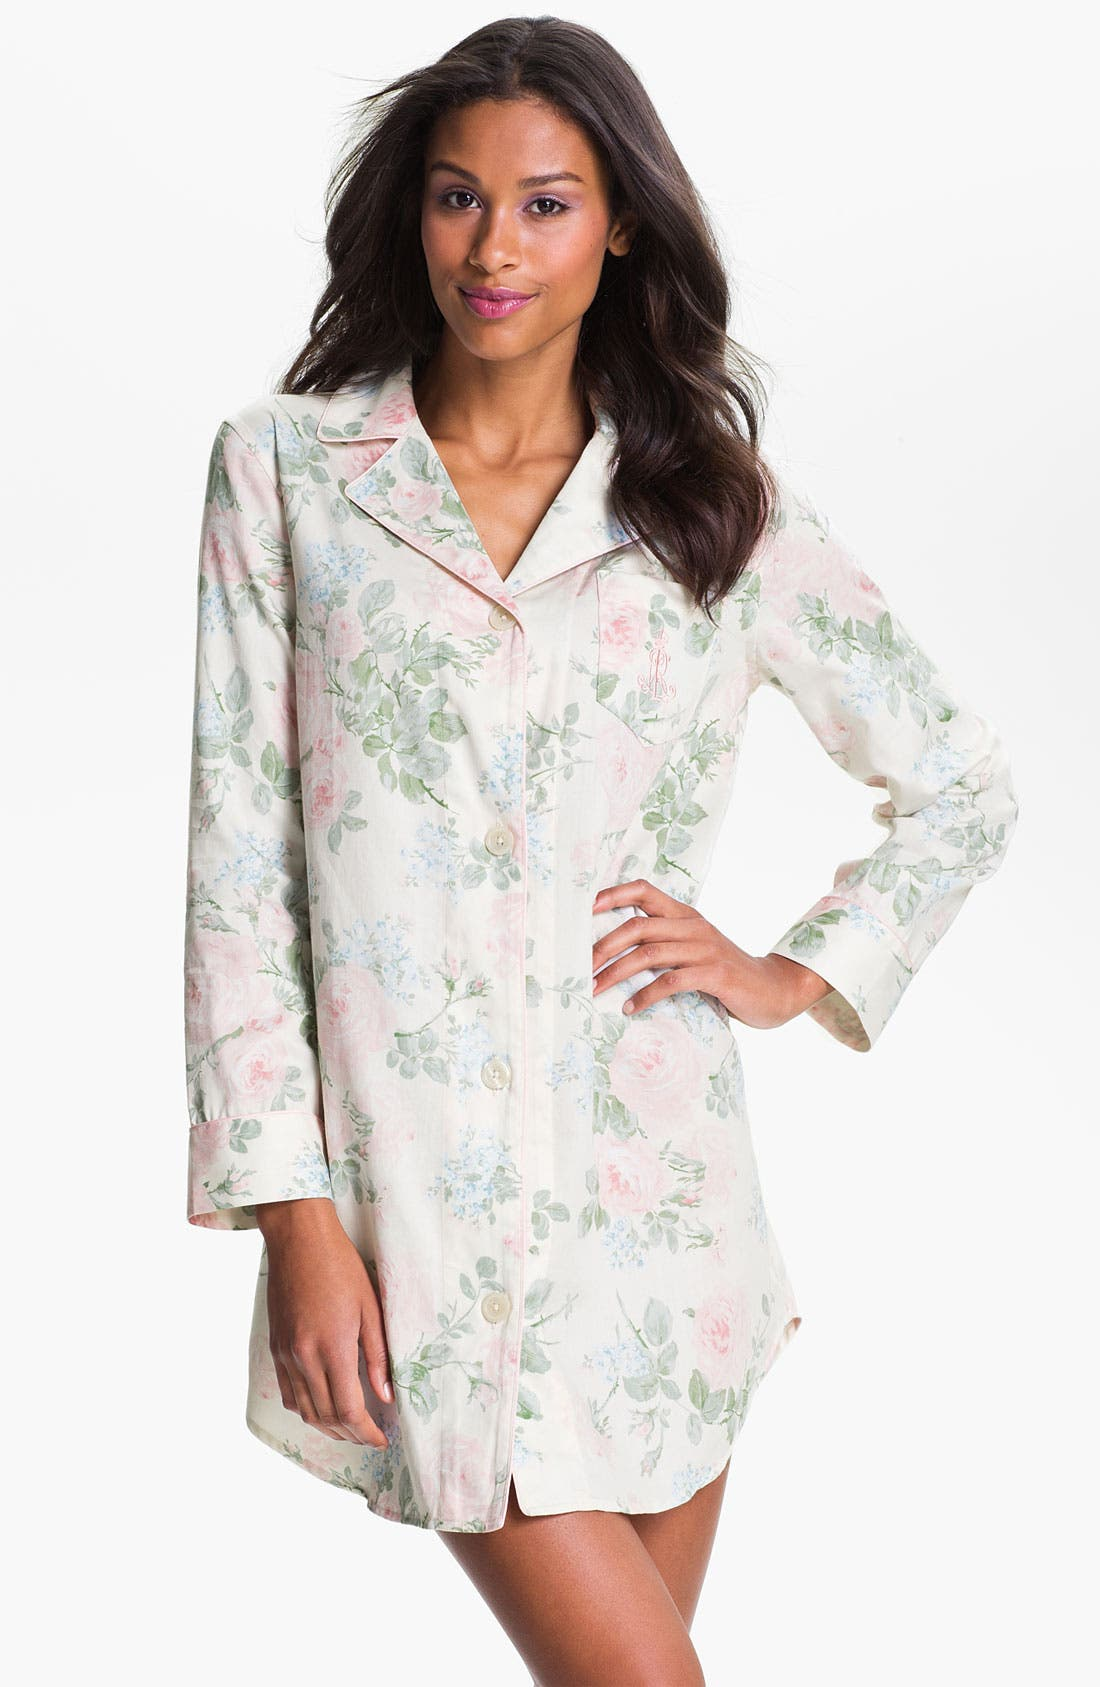 Alternate Image 1 Selected - Lauren Ralph Lauren Sleepwear Floral Print Sleep Shirt